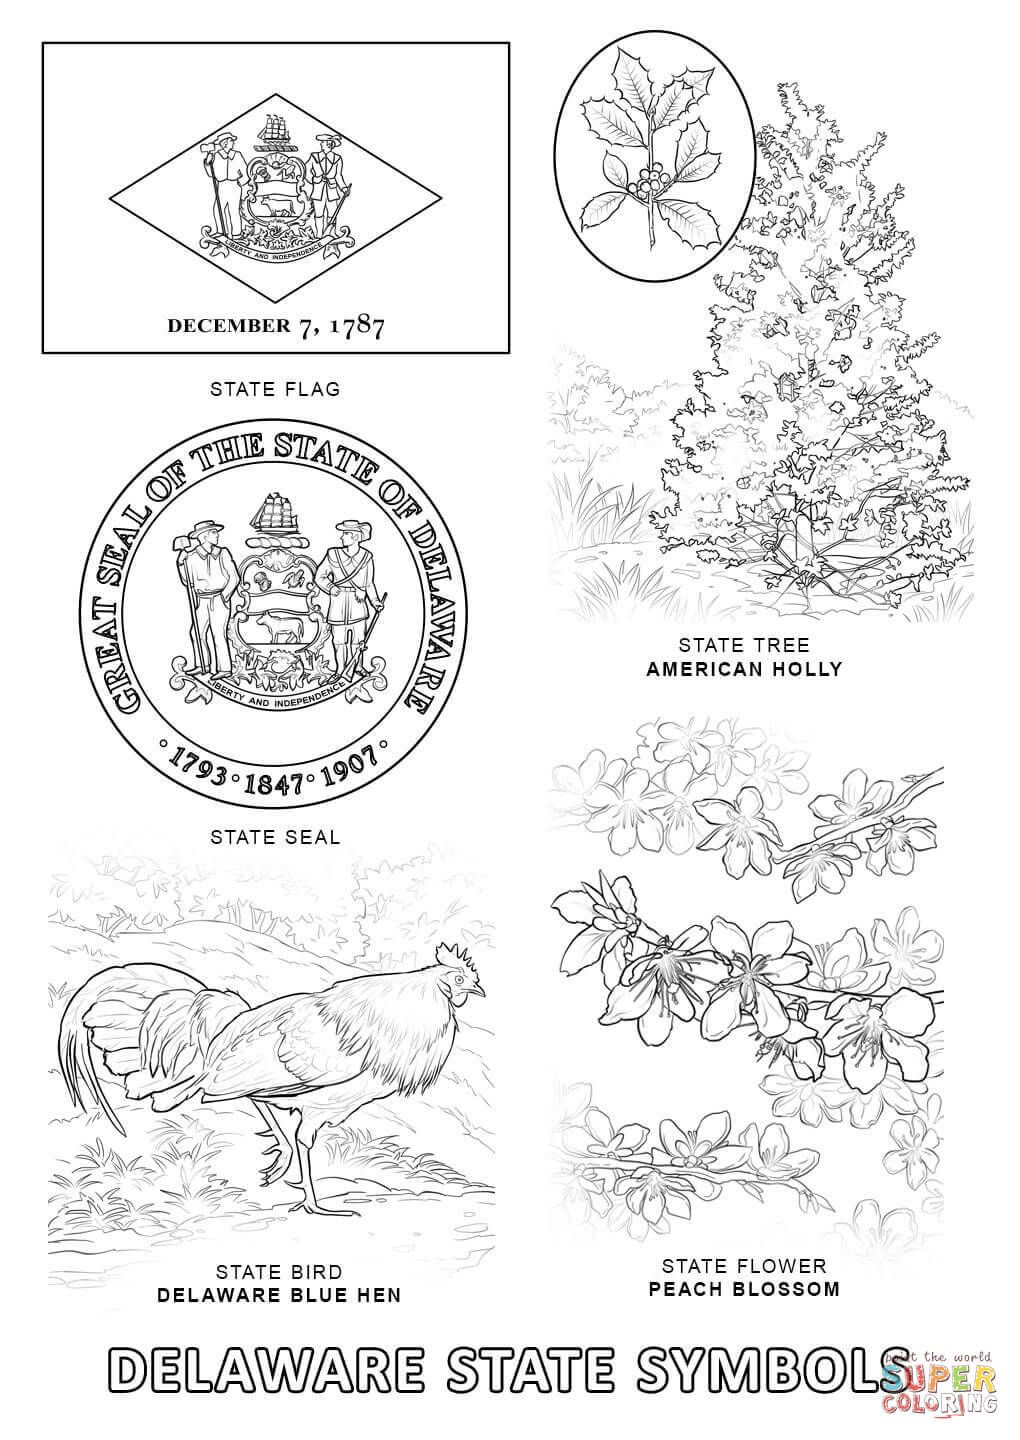 pennsylania state symbols coloring pages | Pin by Debbie Economidis on Places - Delaware | Flag ...